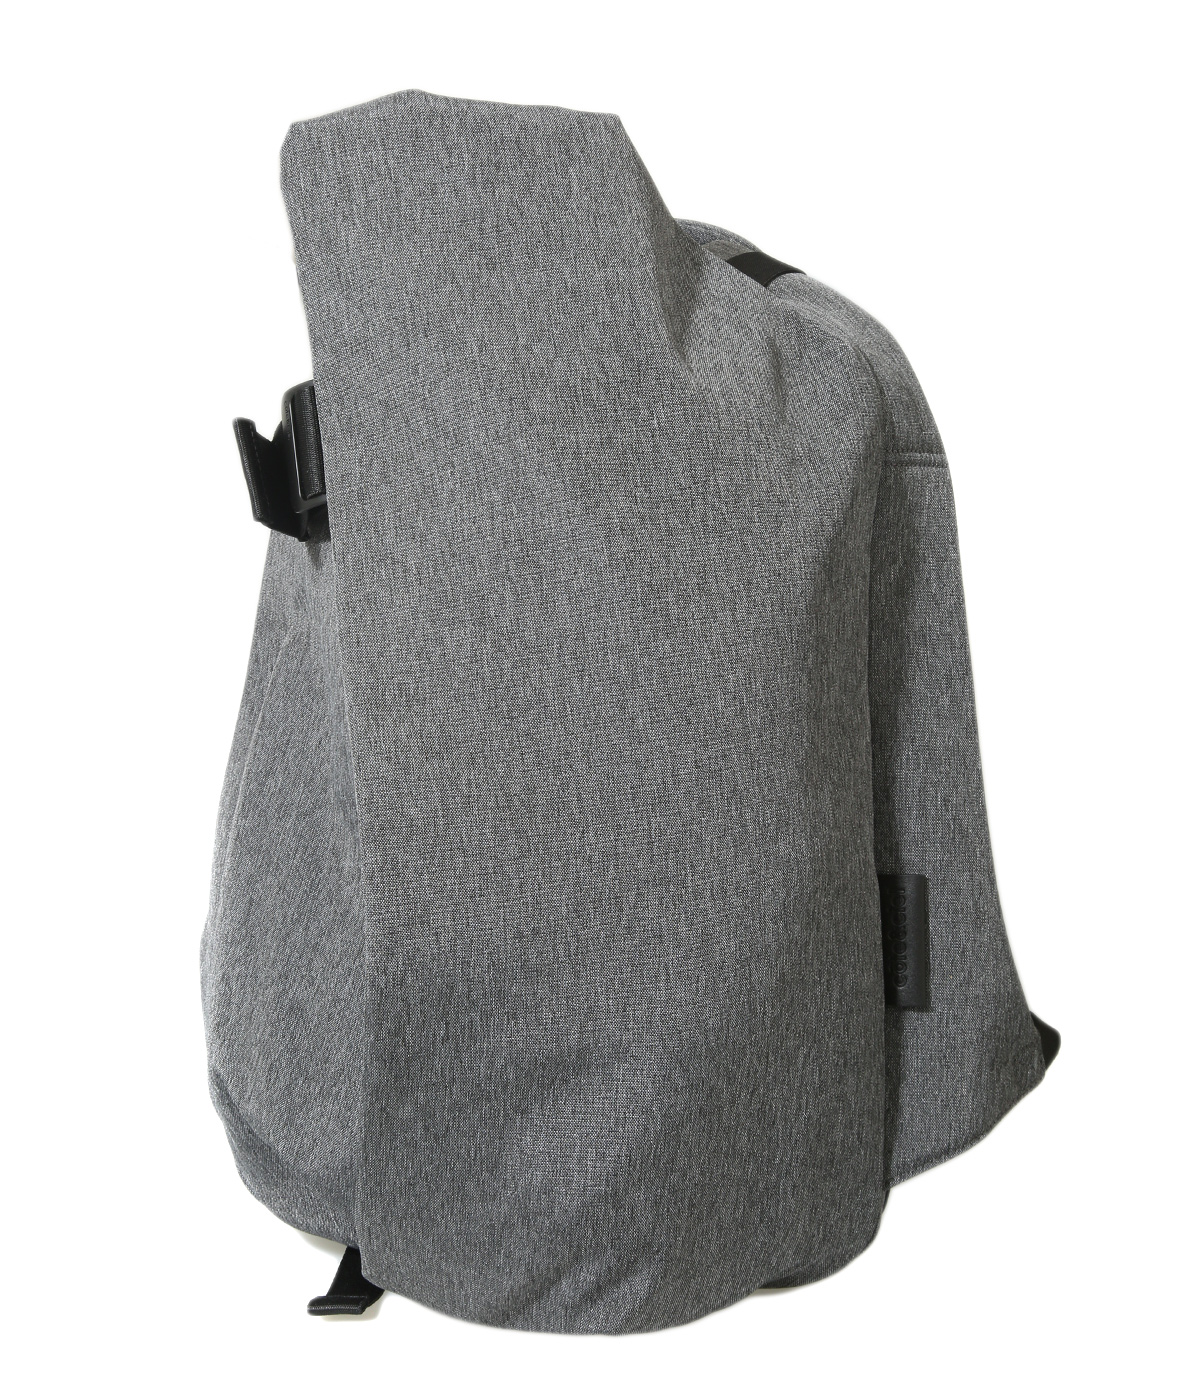 Isar Rucksack M (Eco Yarn / BLACK MELANGE / Laptops up to 13inch)